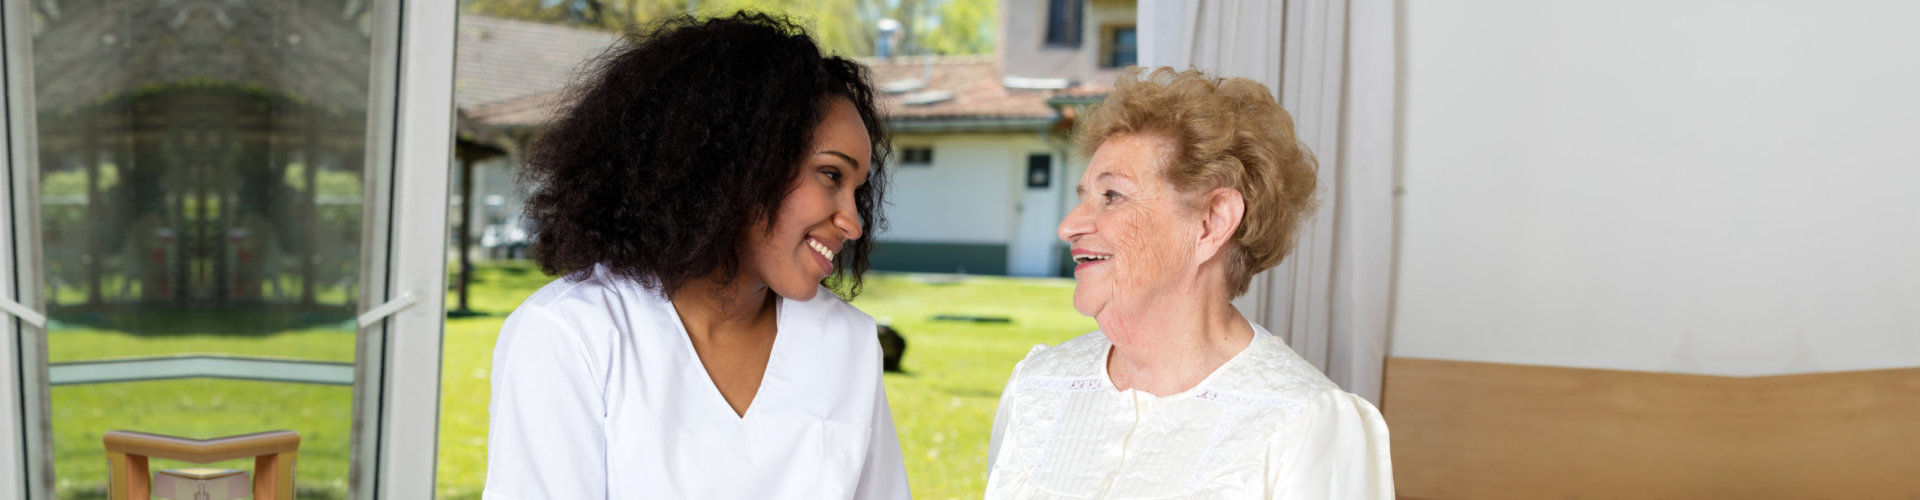 female caregiver and active senior woman talking at each other